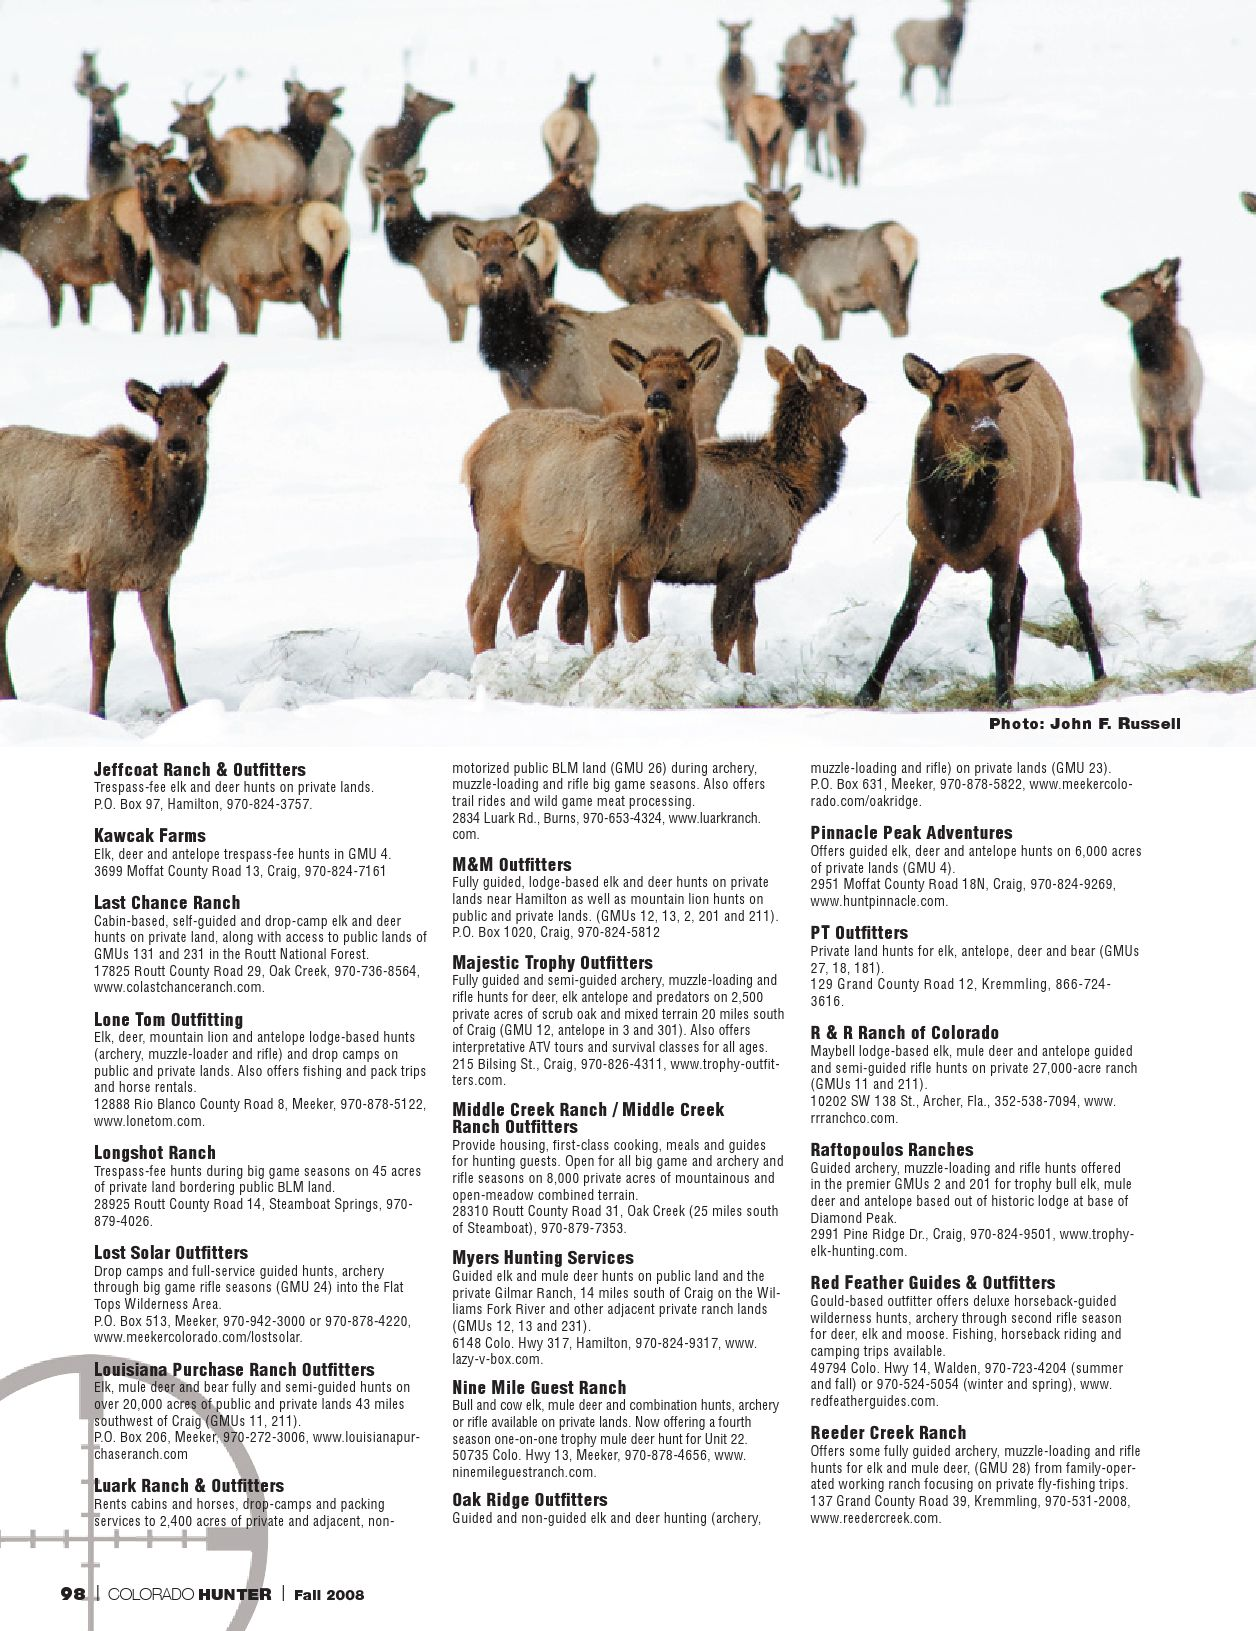 Colorado Hunter 2008 by Steamboat Pilot & Today - issuu